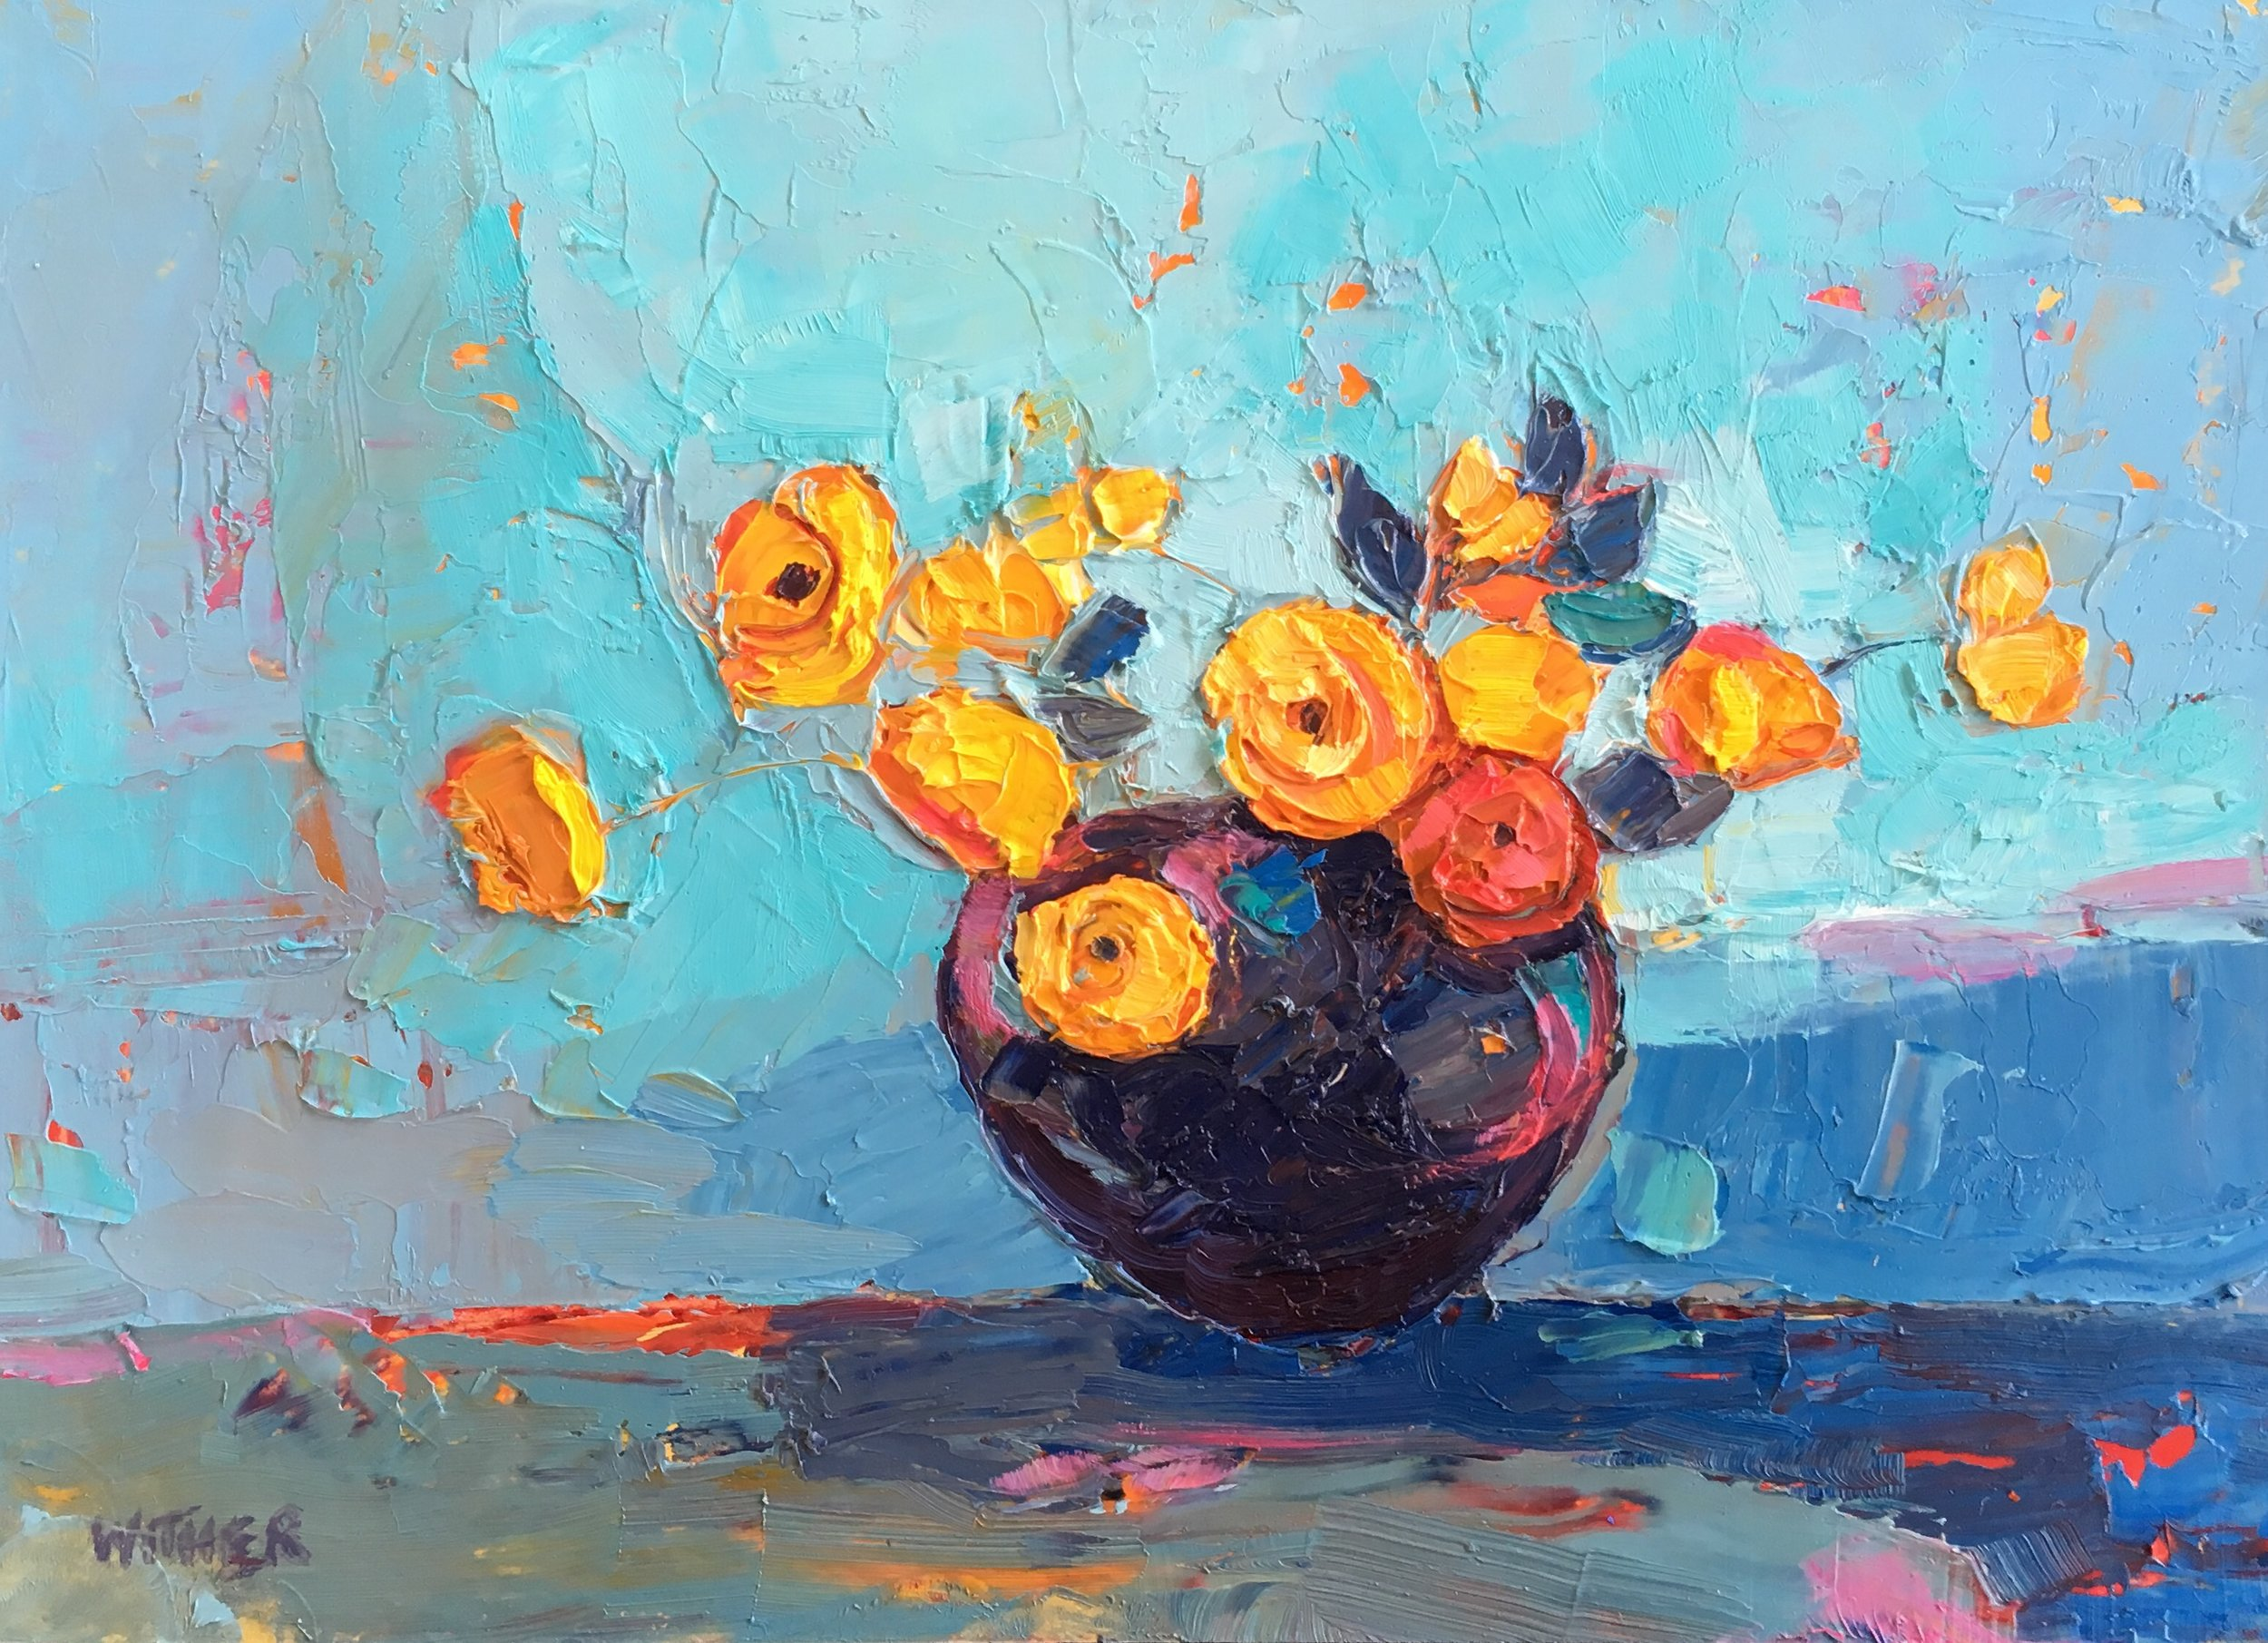 Artist: Kirsty Wither  Title: All in Aqua  Size: 15 x 20 cm  Medium: Oil on board  SOLD